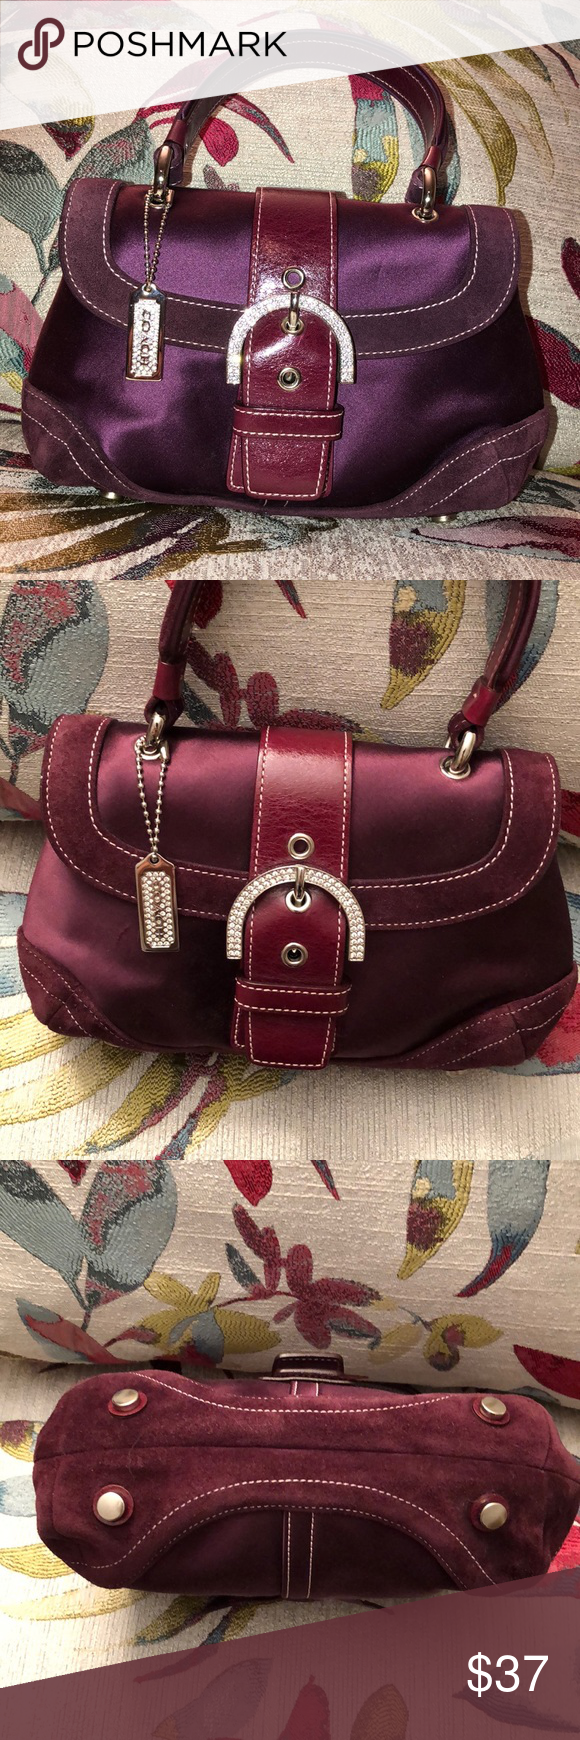 Coach hand bag Beautiful preowned never used Coach hand bag. Very nice  Burgundy wine suede 5b7a32b097